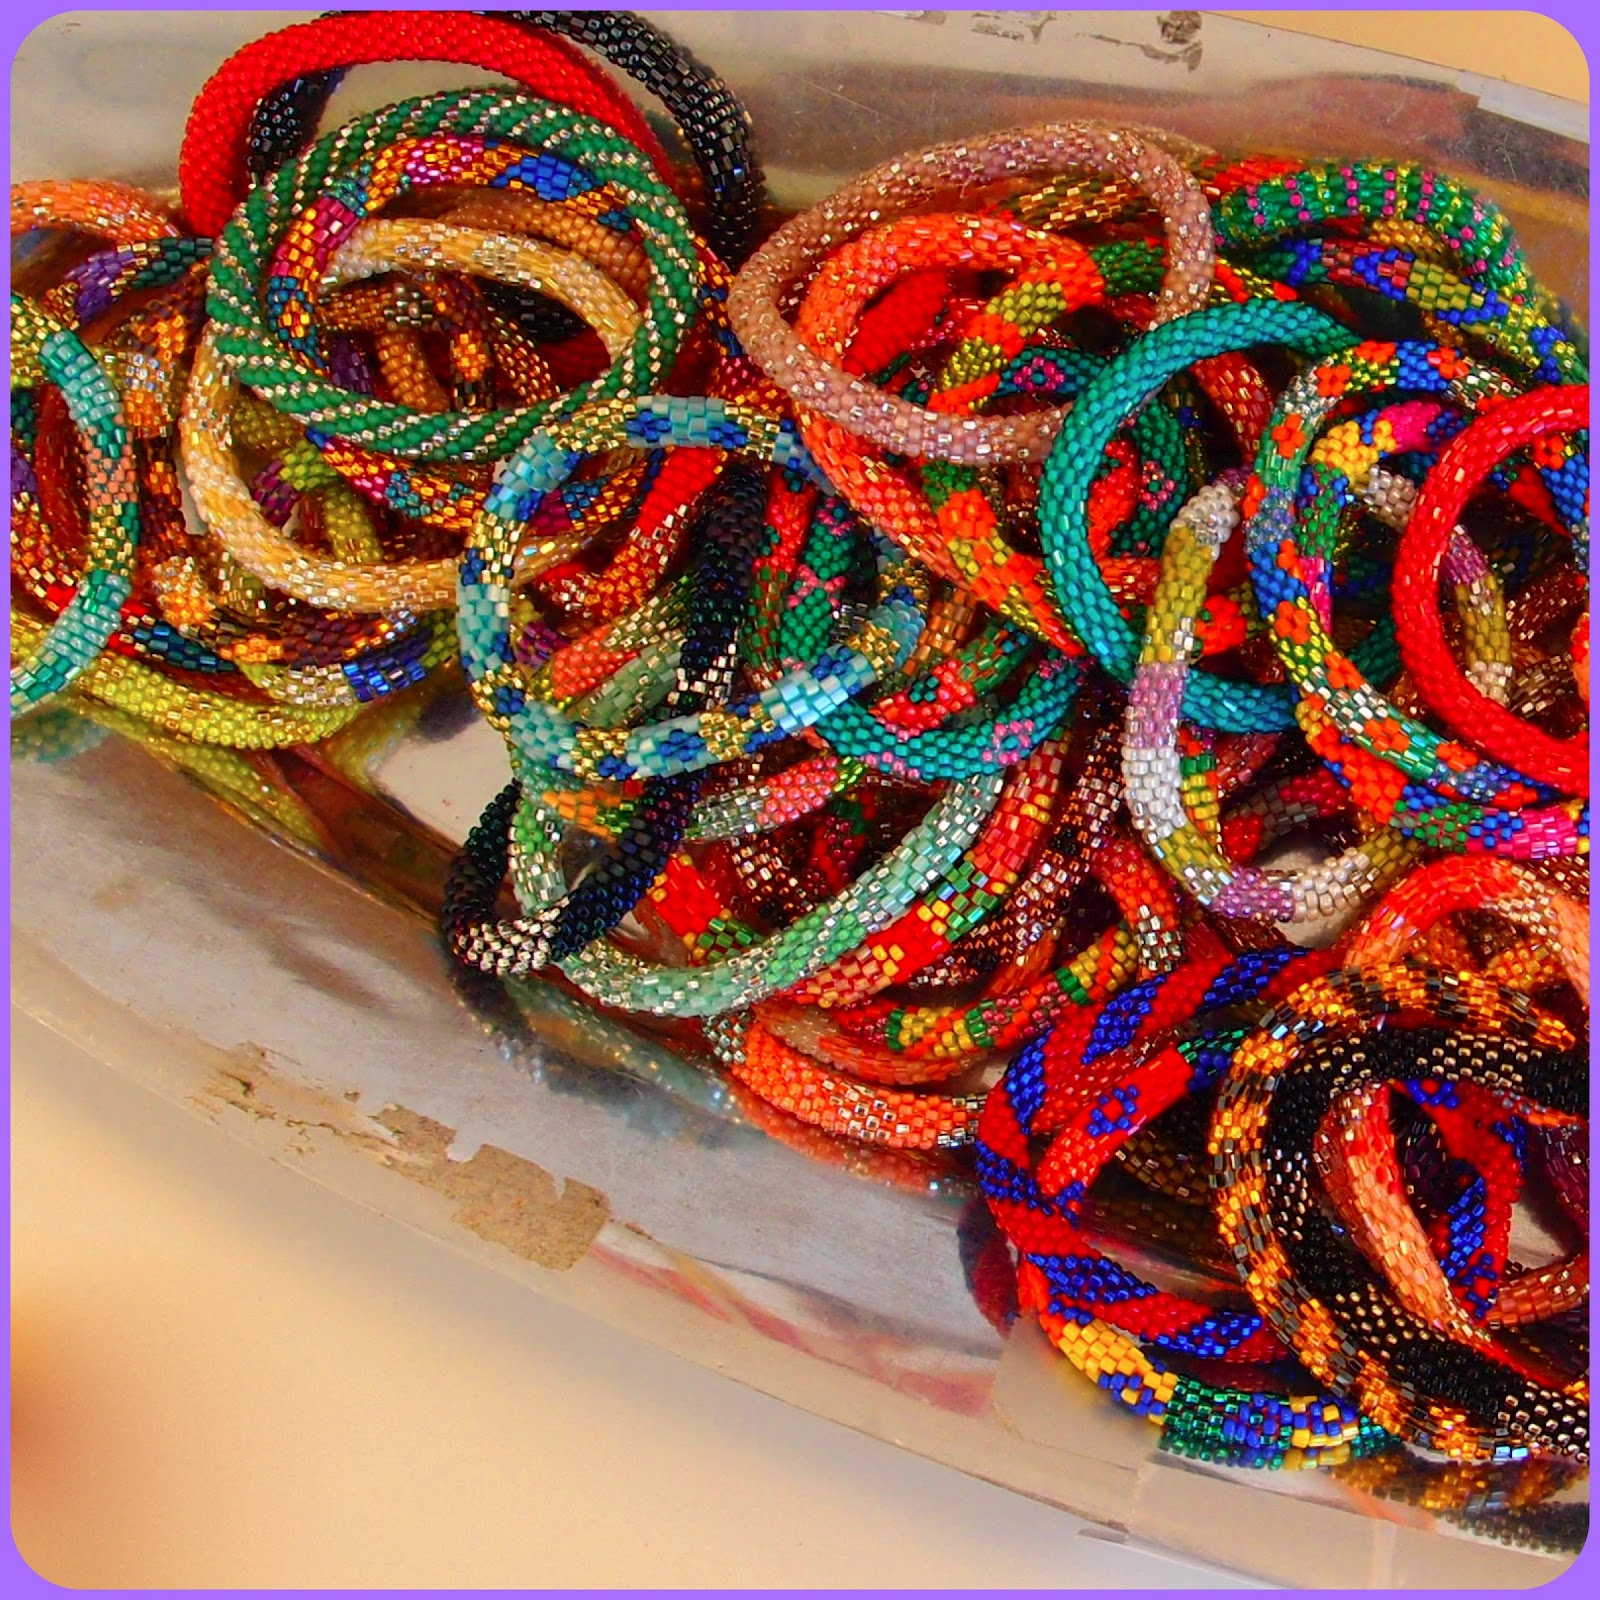 Ahhh Bracelets I Swear Cannot Get Enough Of Them These Sweet Little Things Are Lily And Laura They Beaded That